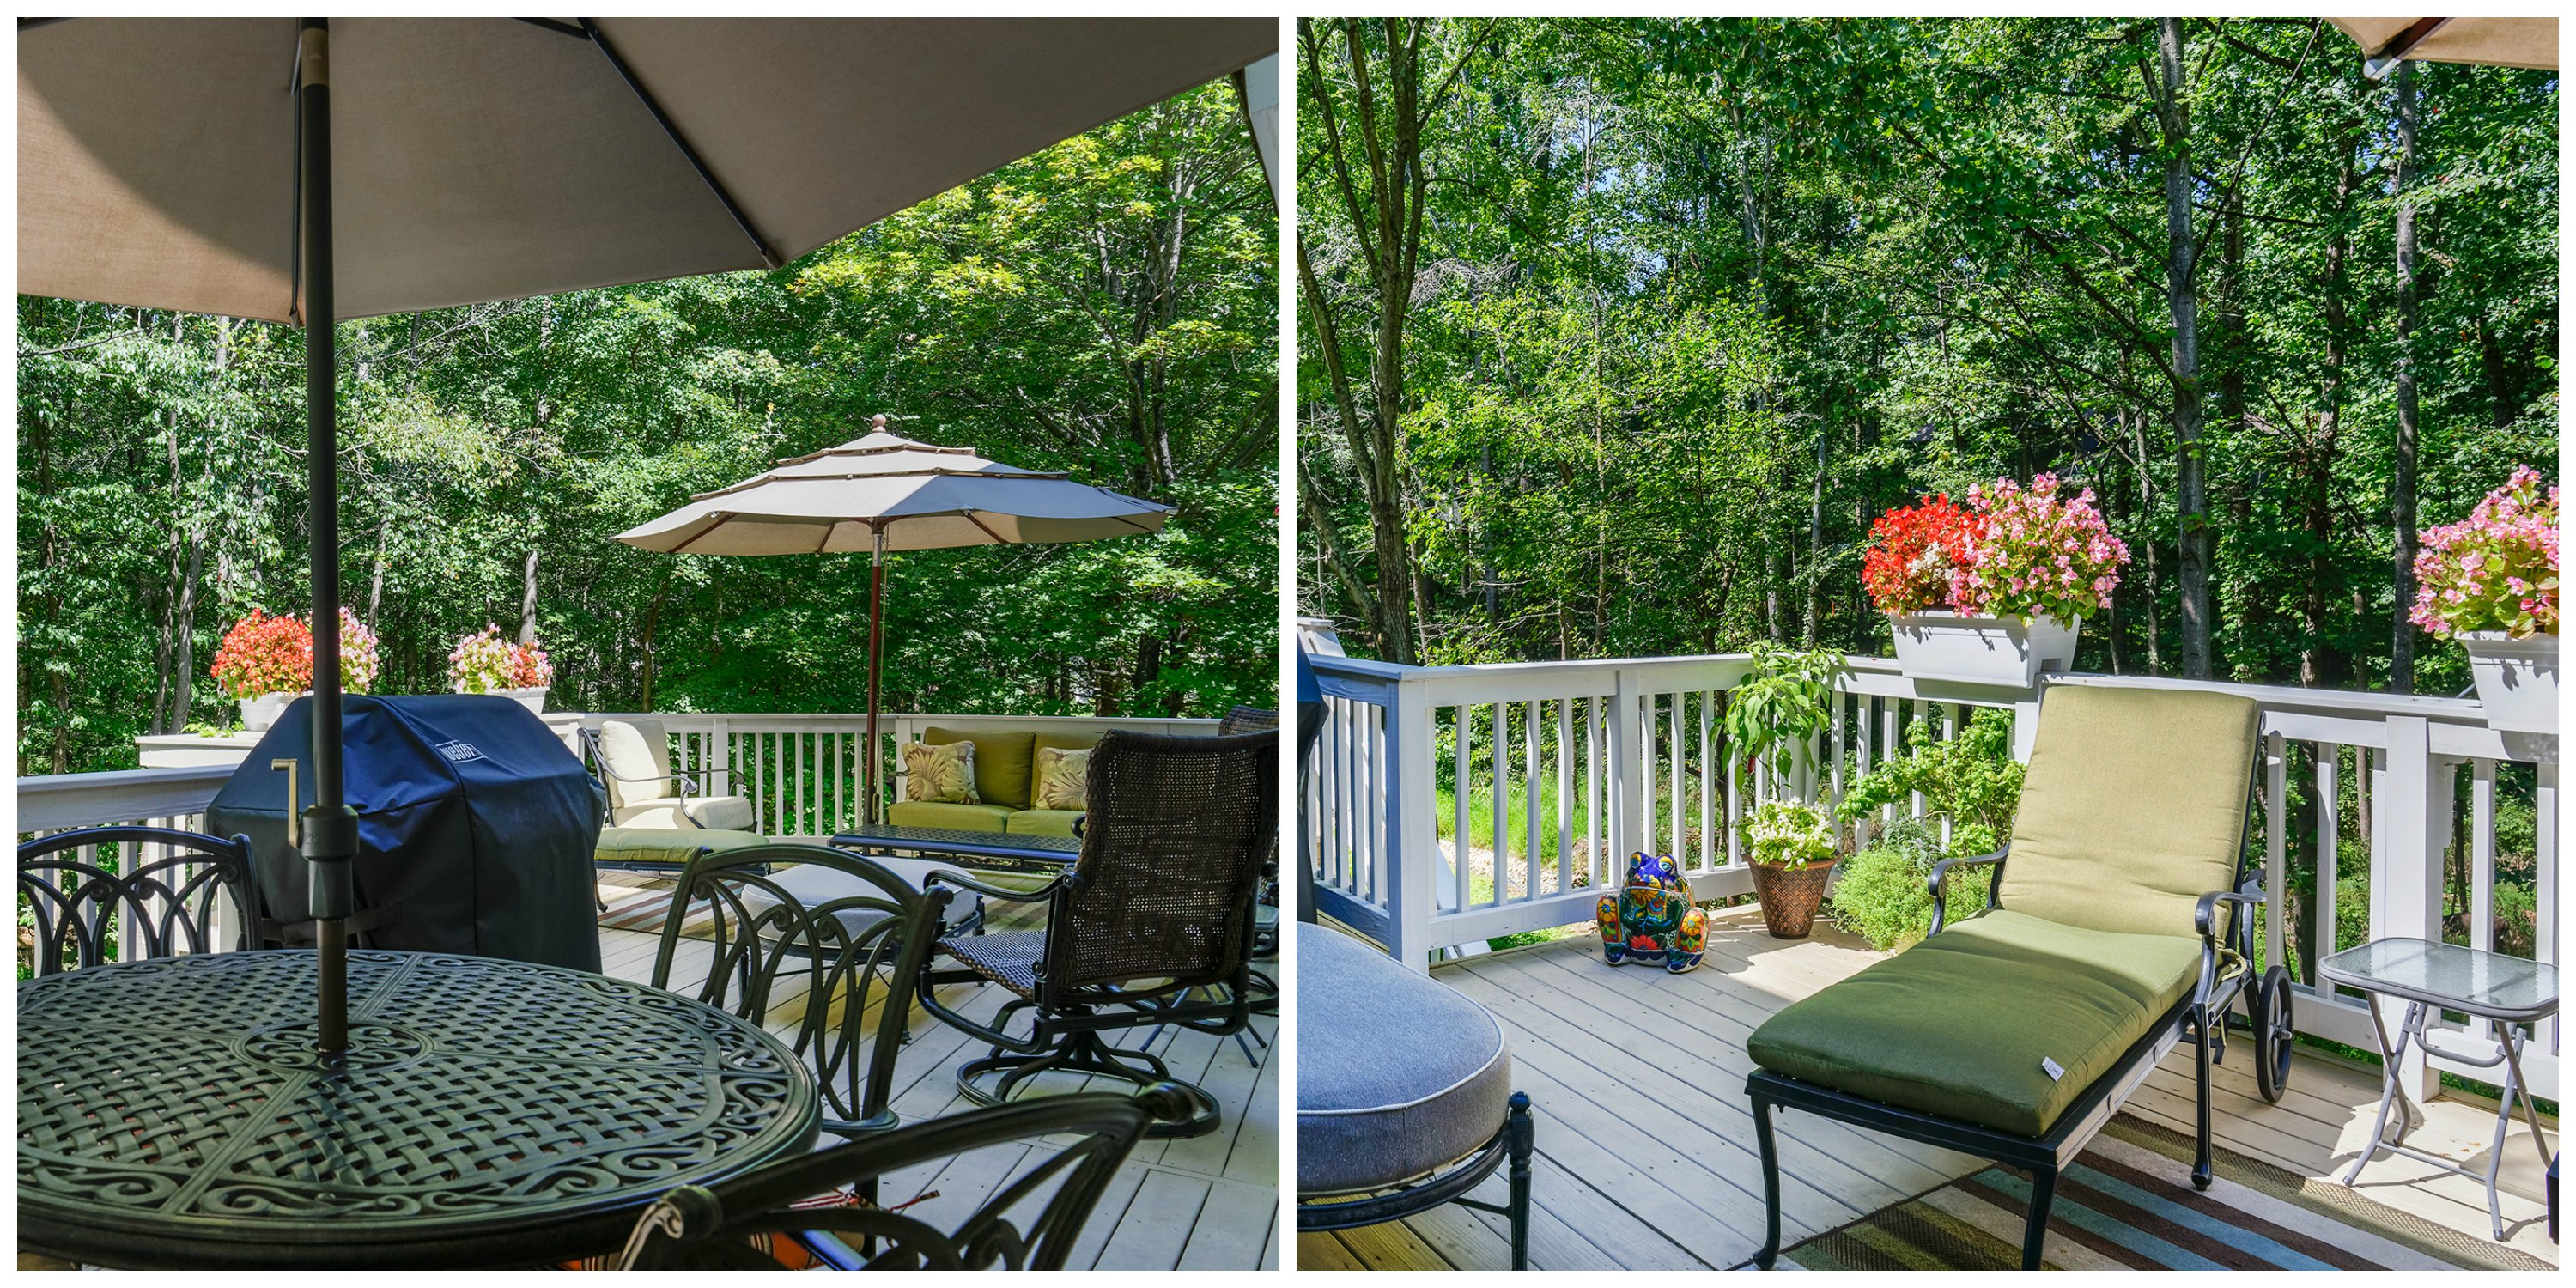 1248 Lamplighter Way, Reston- Deck